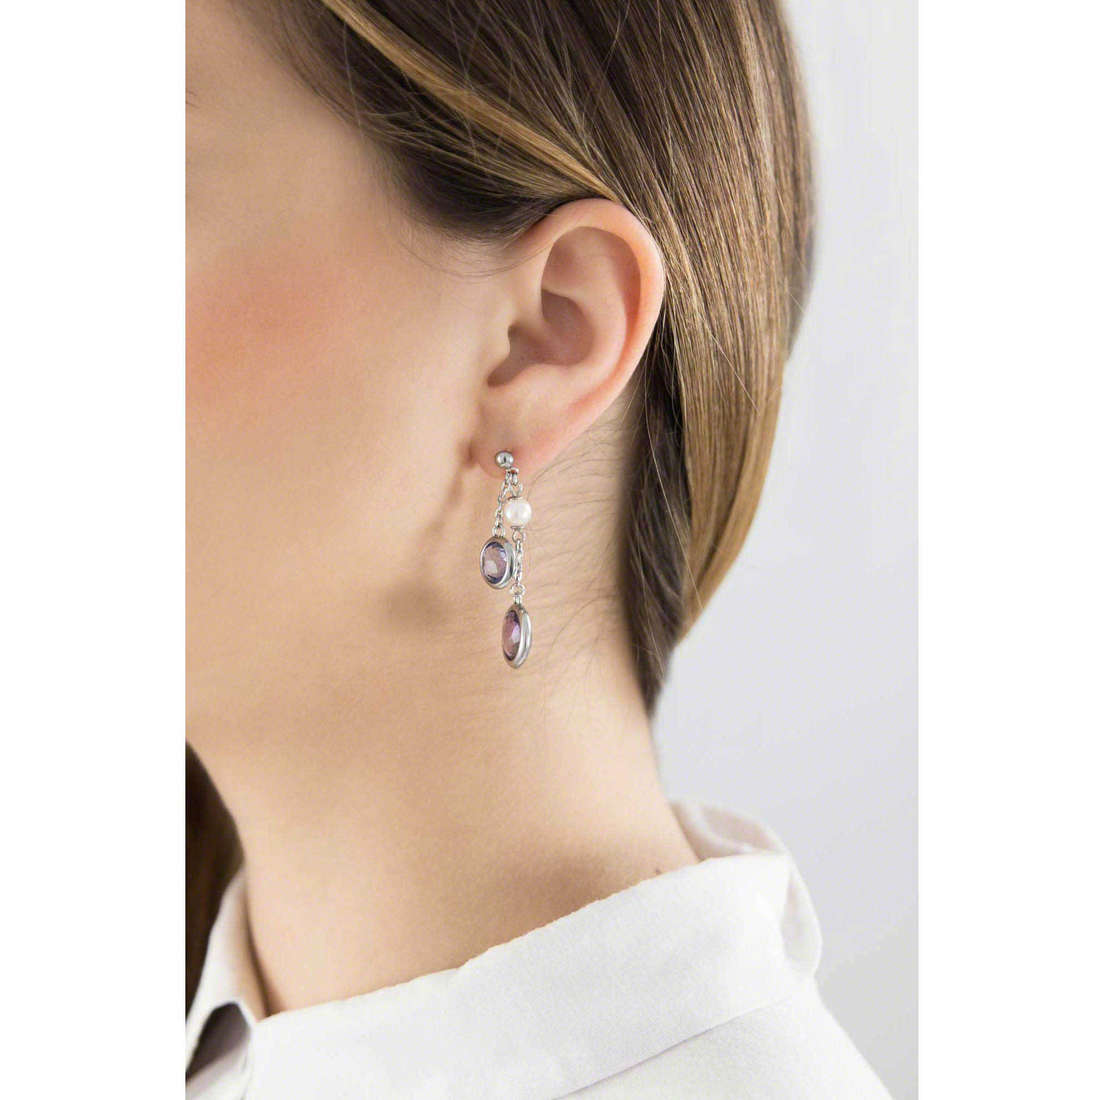 Brosway boucles d'oreille Catherine femme BCA21 indosso